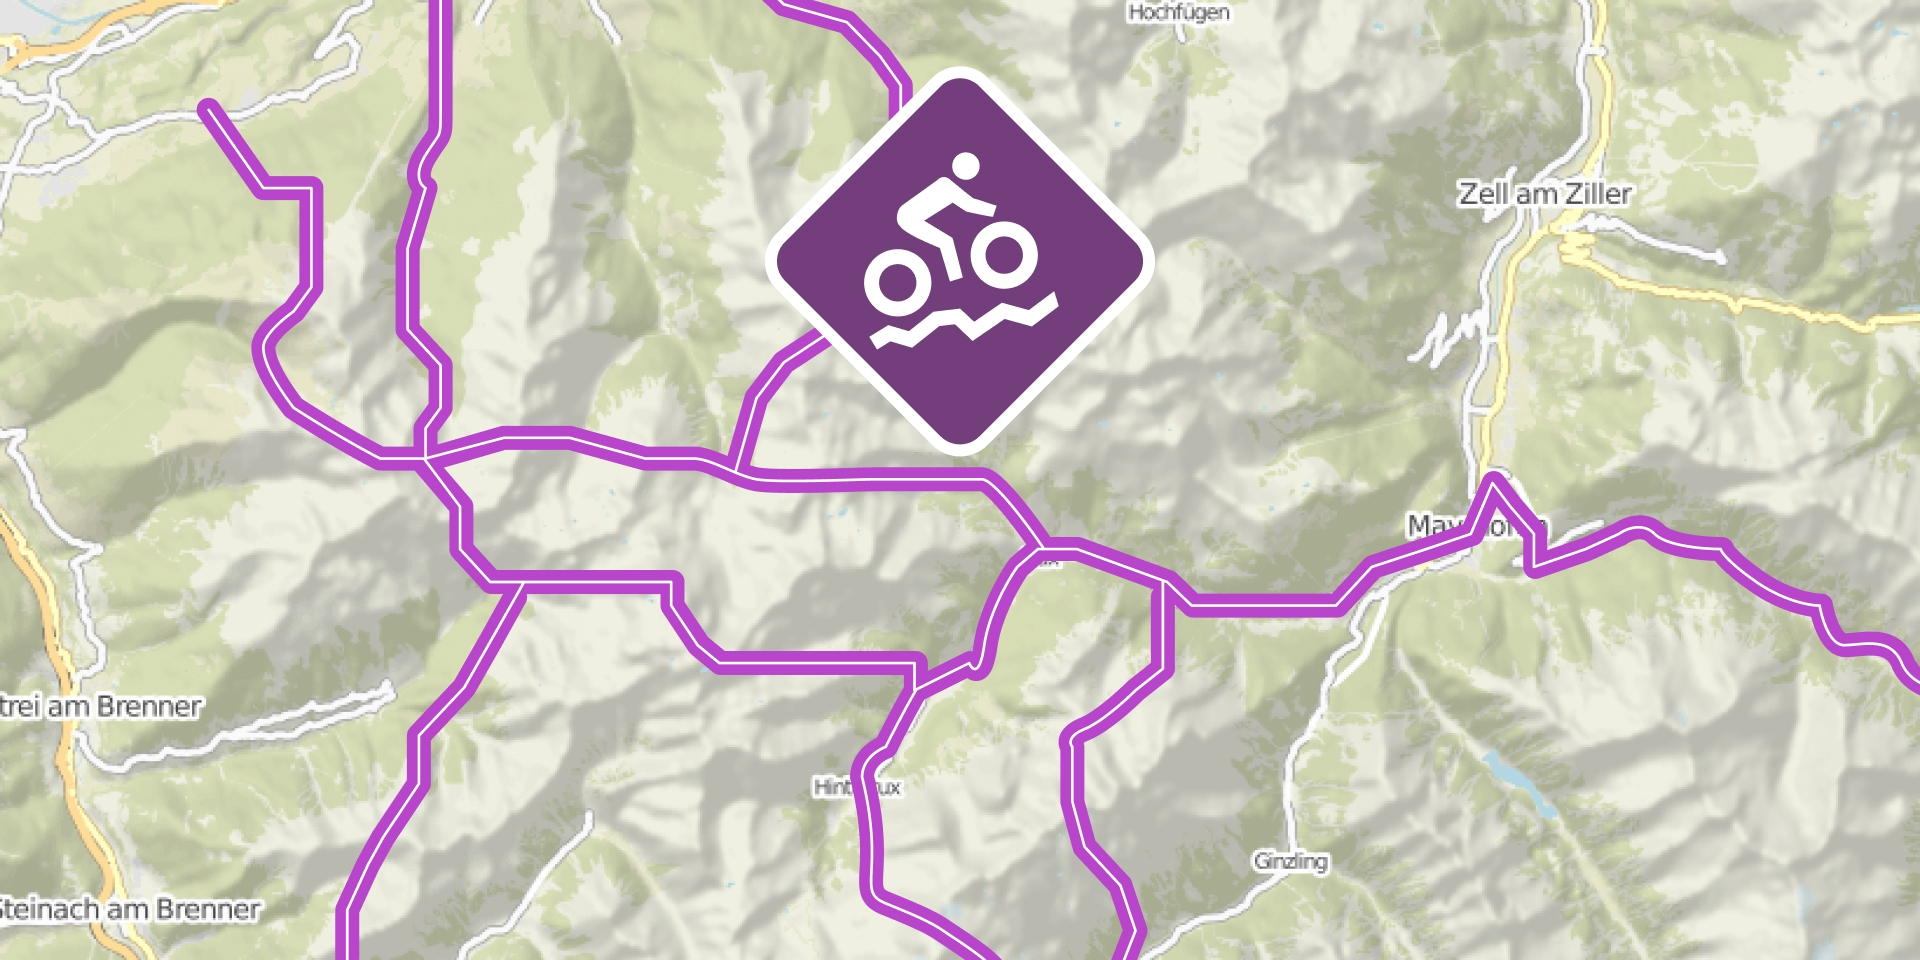 sport_specific_maps_4